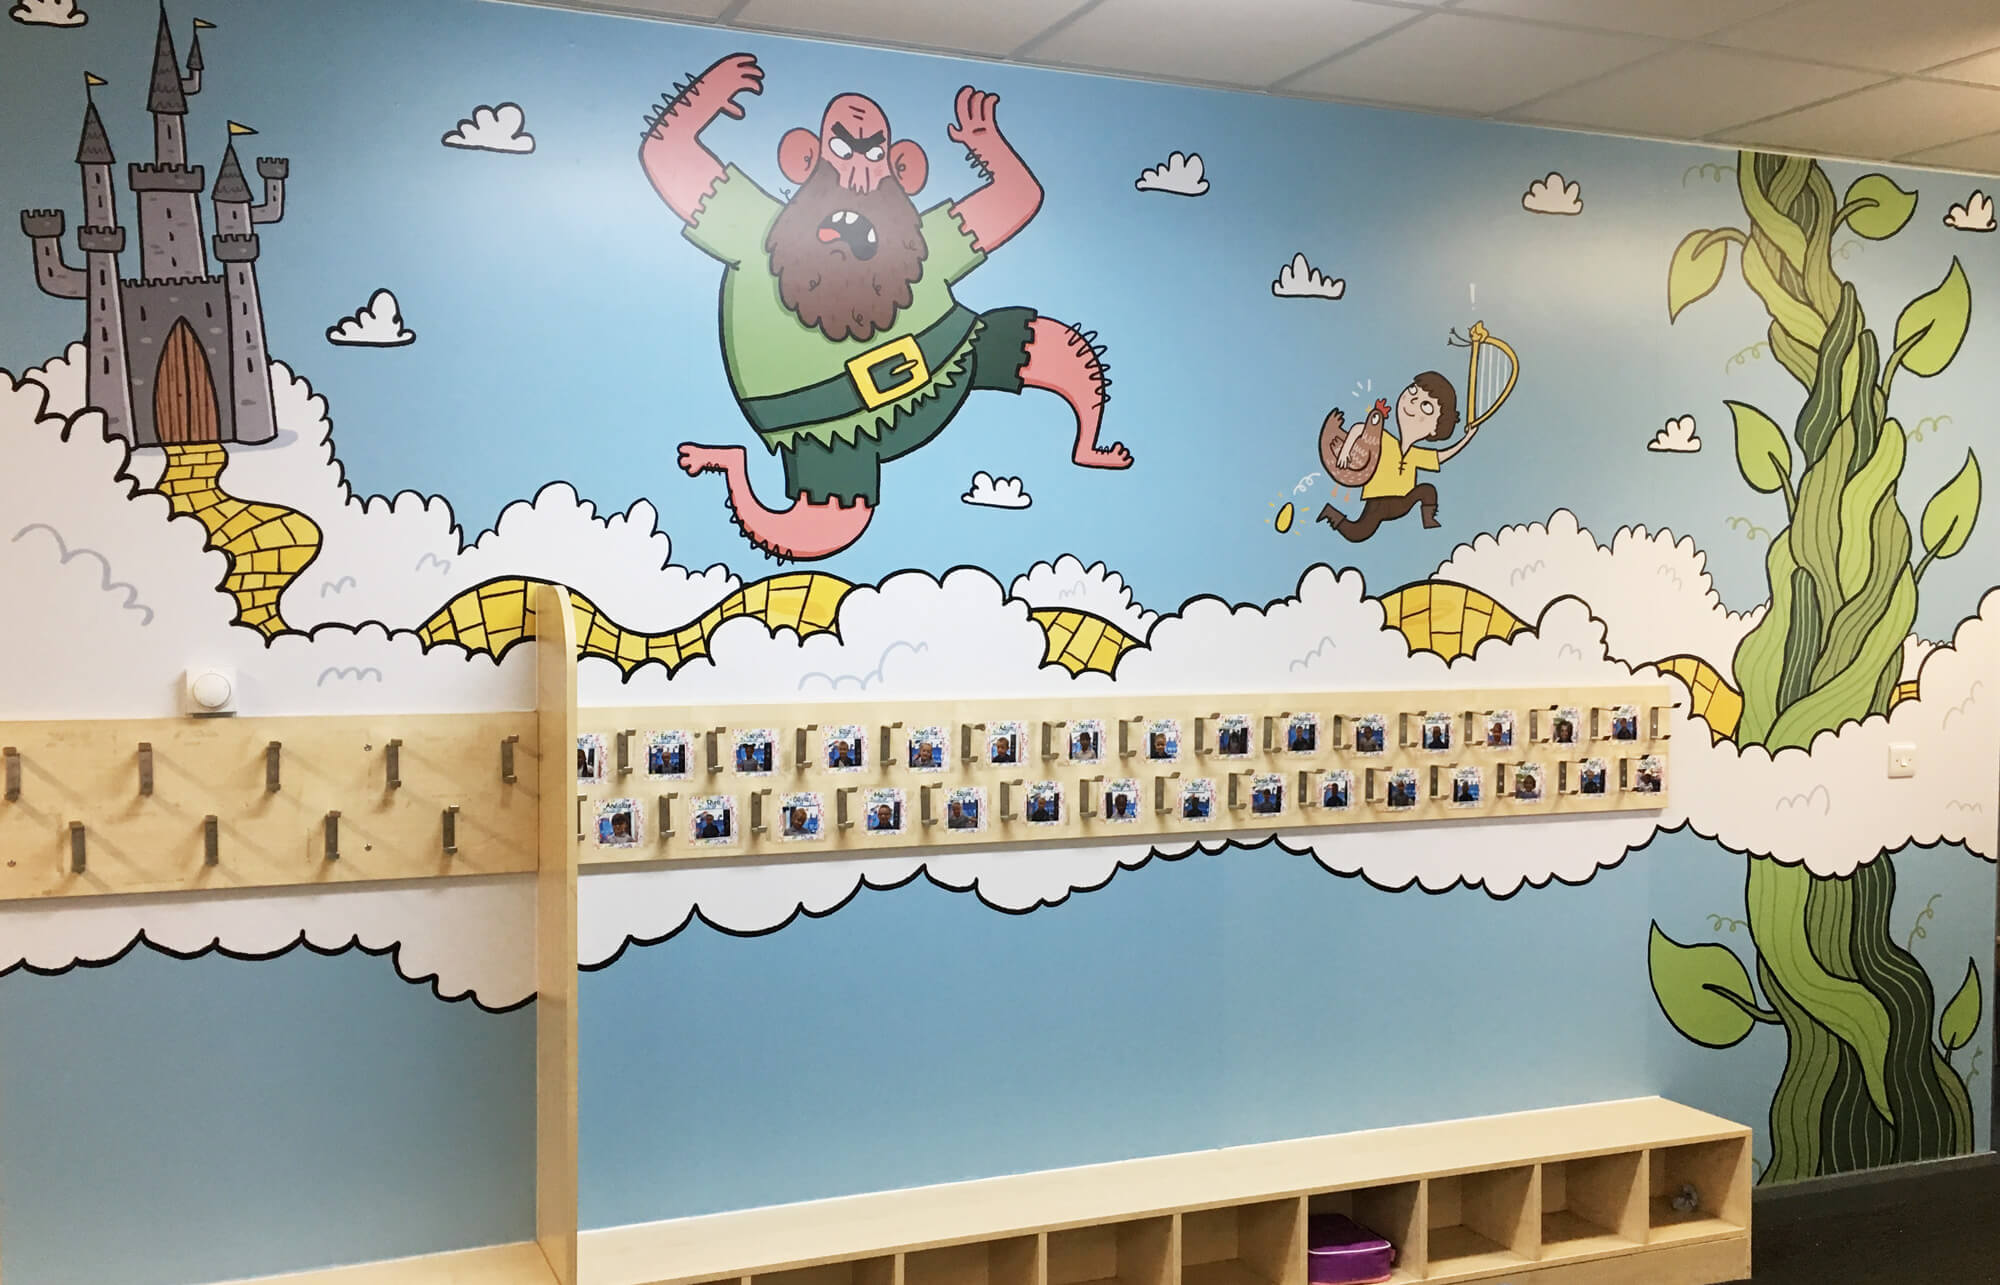 sacred_heart_primary_traditional_tales_wallgraphics_07.jpg